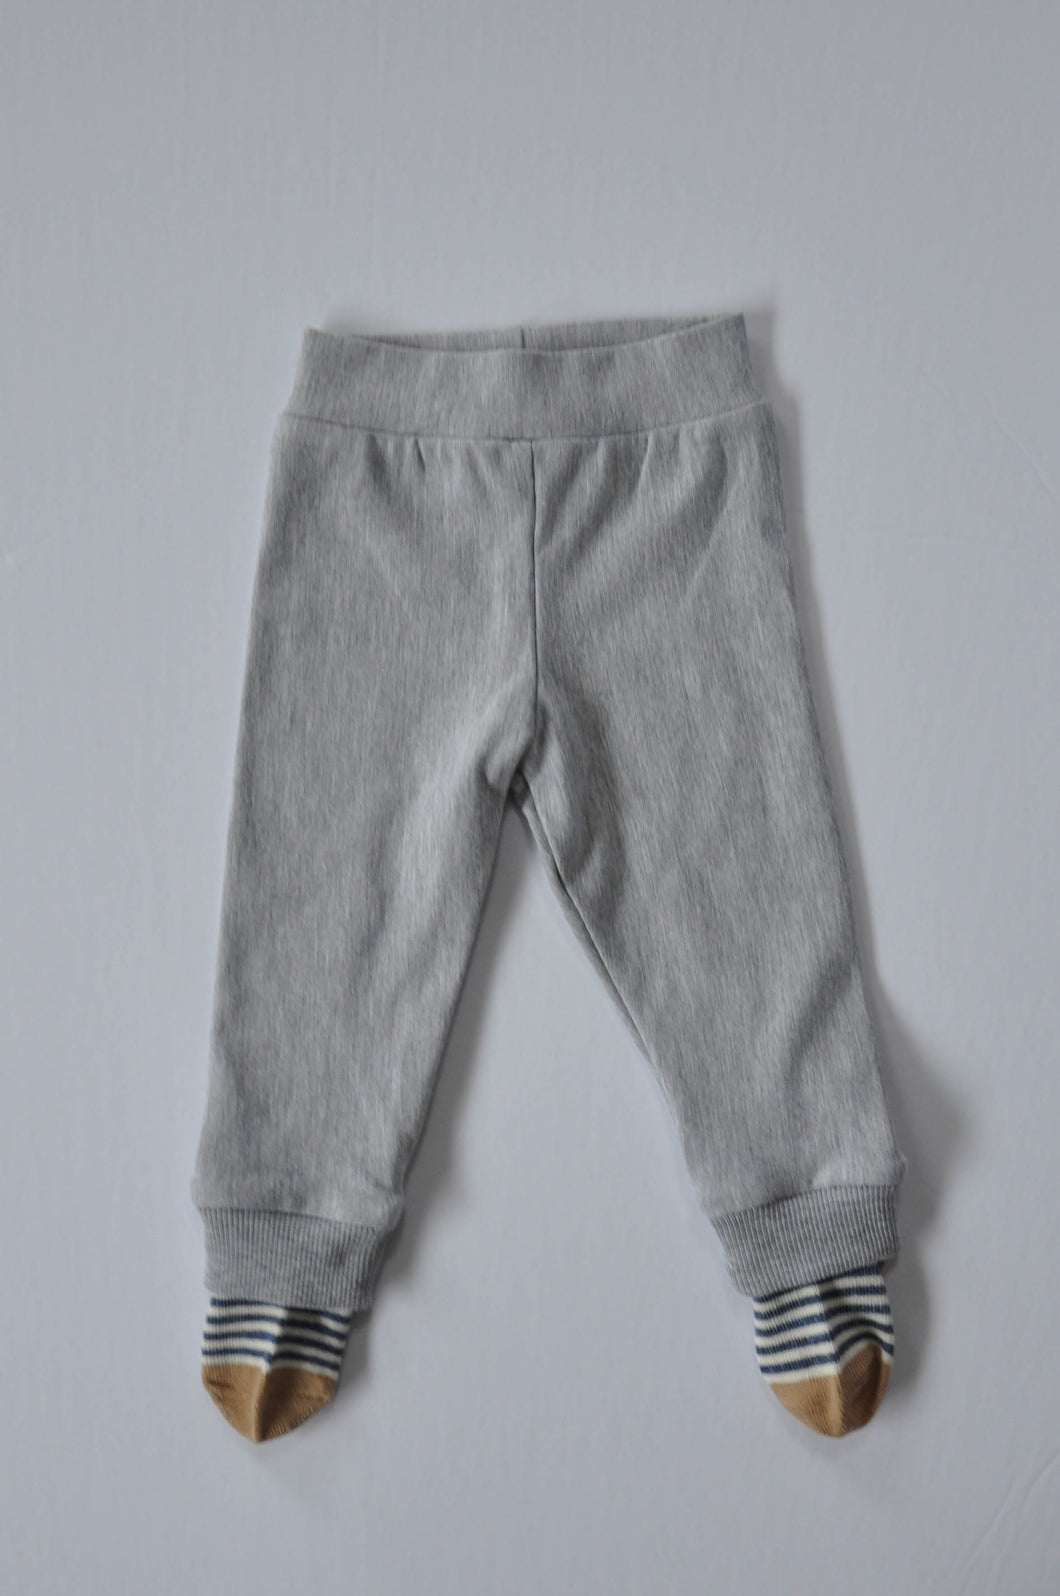 Classic Grey Leggings with Blue Thin Stripe Socks